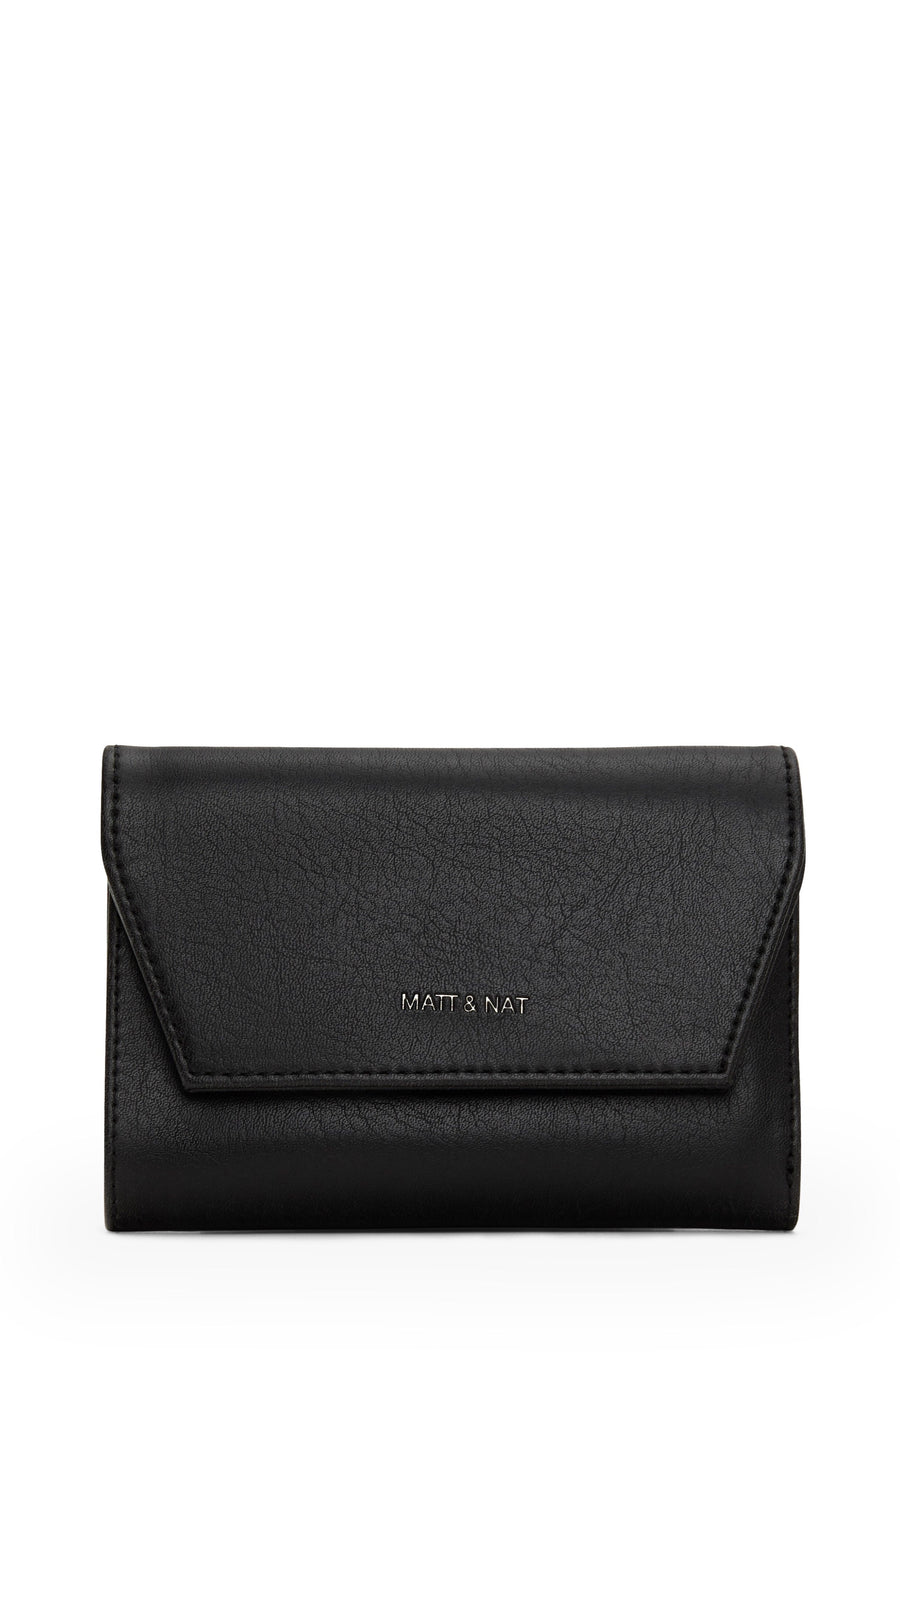 Vera Small Wallet in Black by Matt & Nat